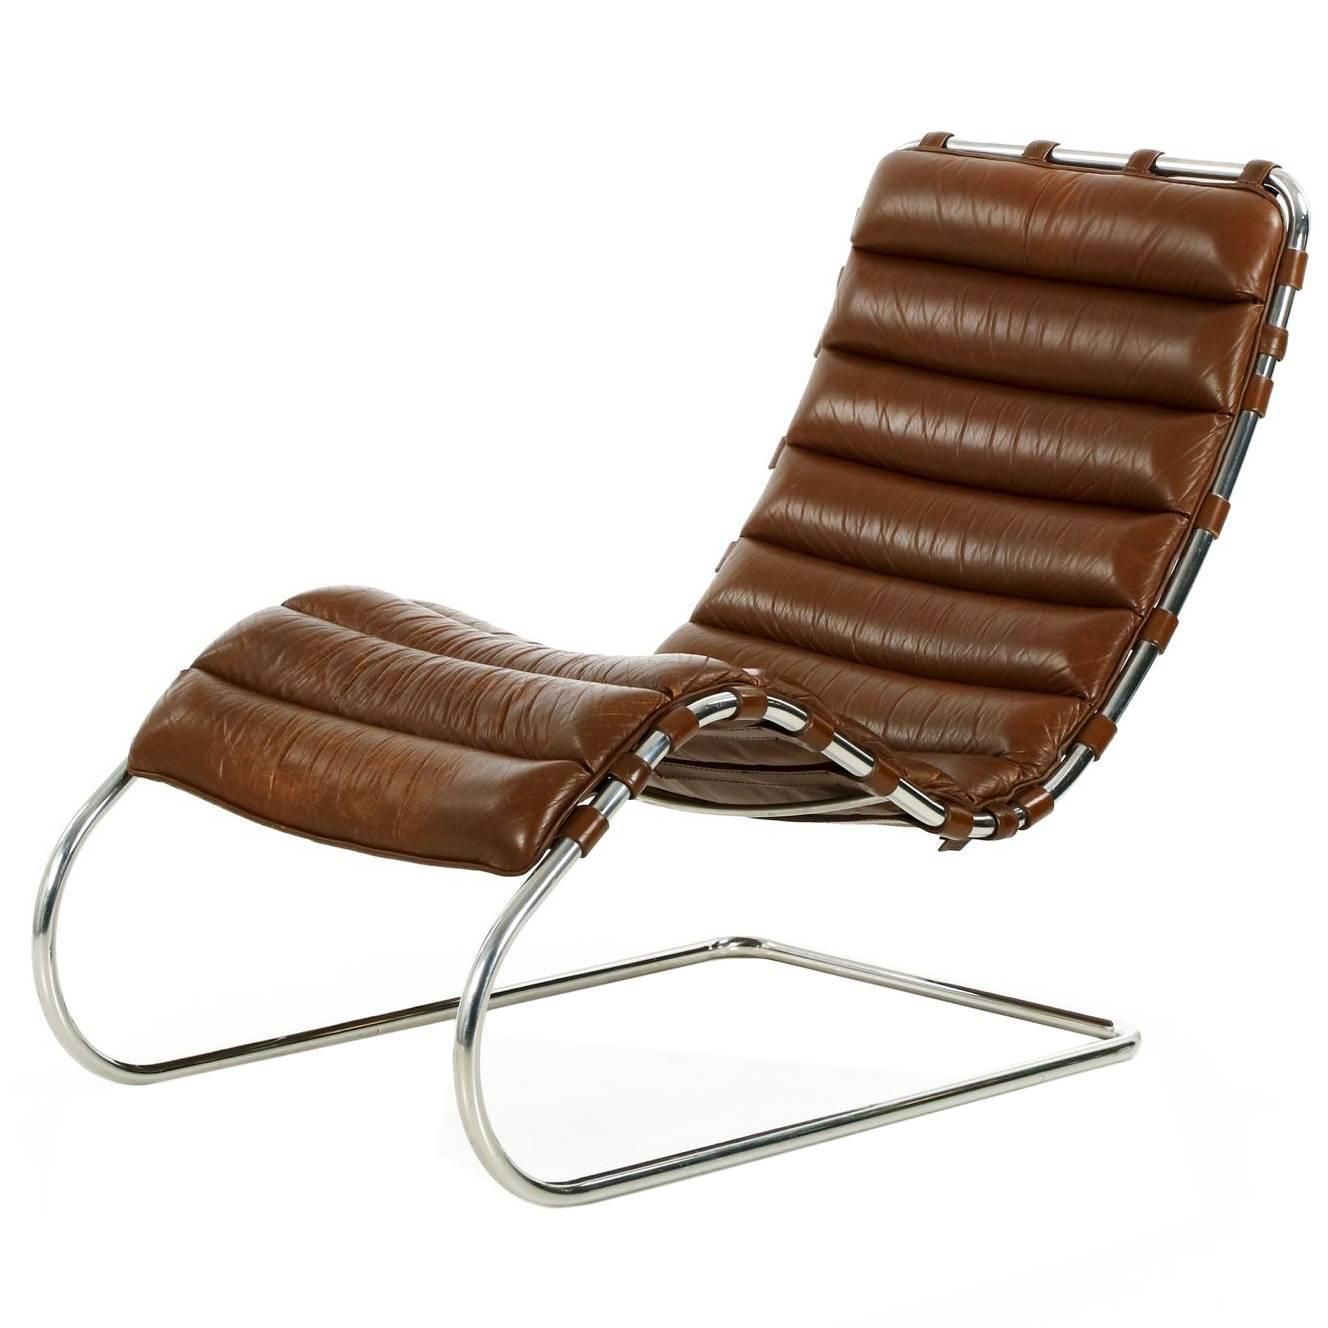 Fine Mies Van Der Rohe For Knoll MR Chaise Lounge In Original Leather